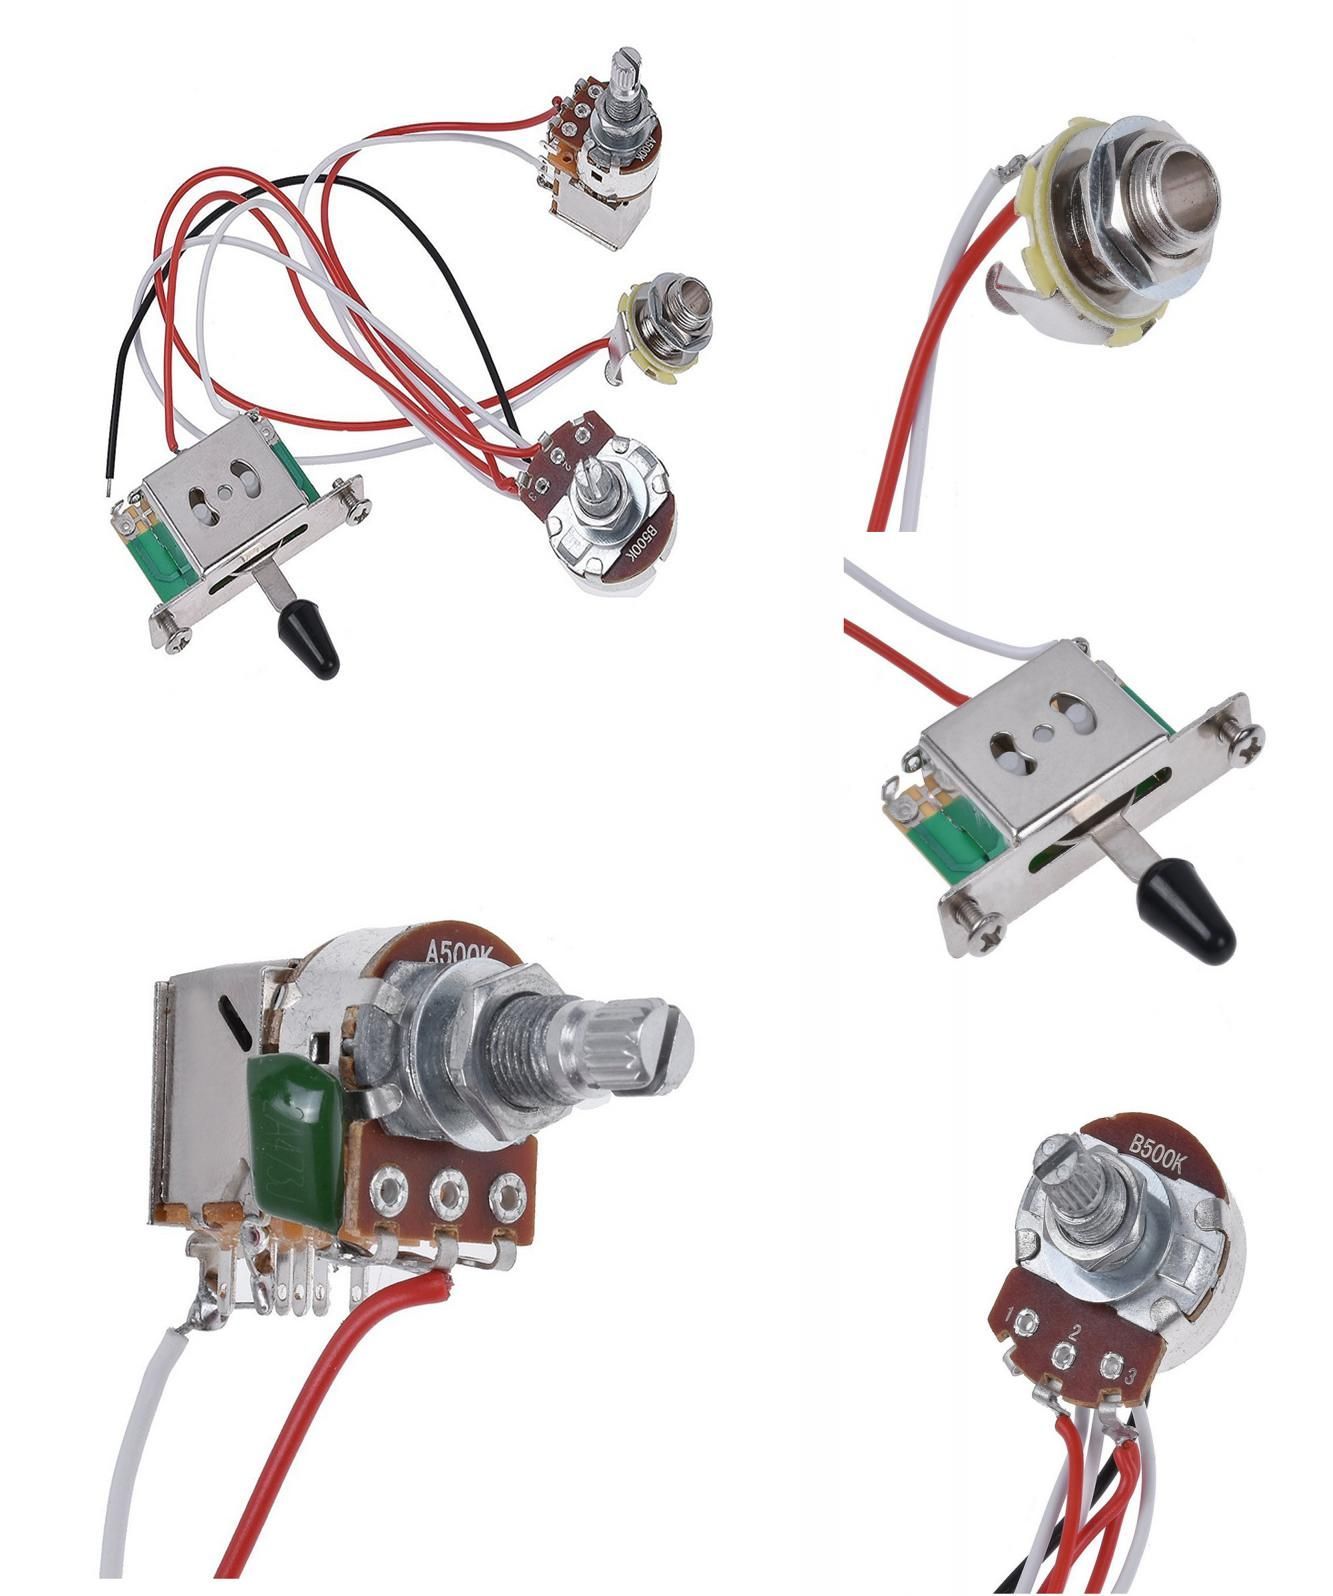 small resolution of  visit to buy electric guitar wiring harness prewired kit 3 way toggle switch 1